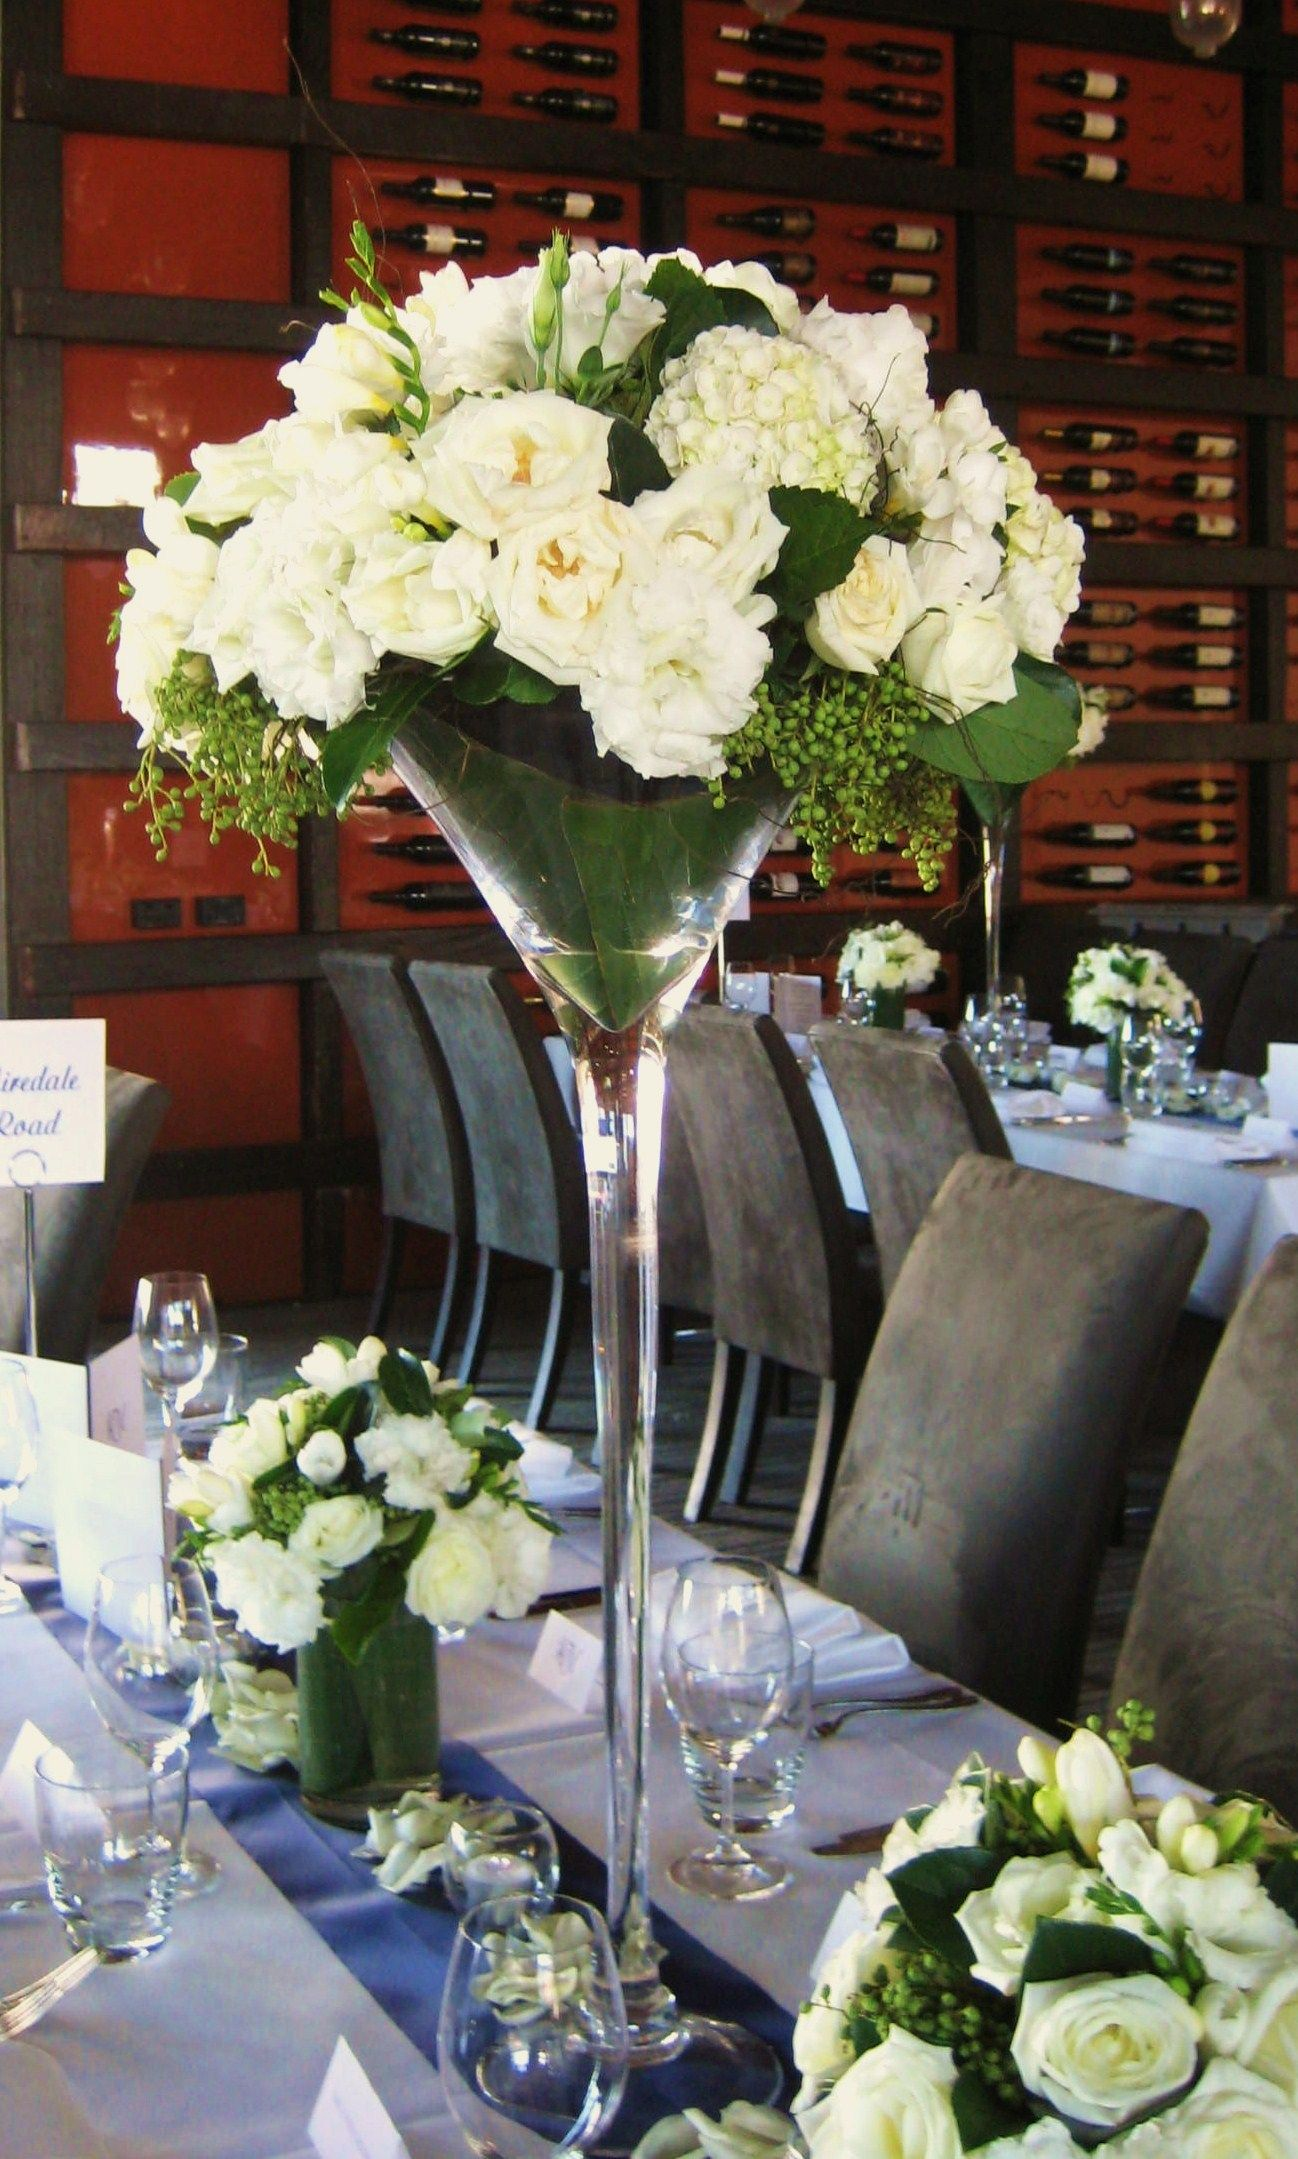 For more great ideas and information about our venues visit our tall wedding centrepieces martini glass hide the oasis with pearls reviewsmspy